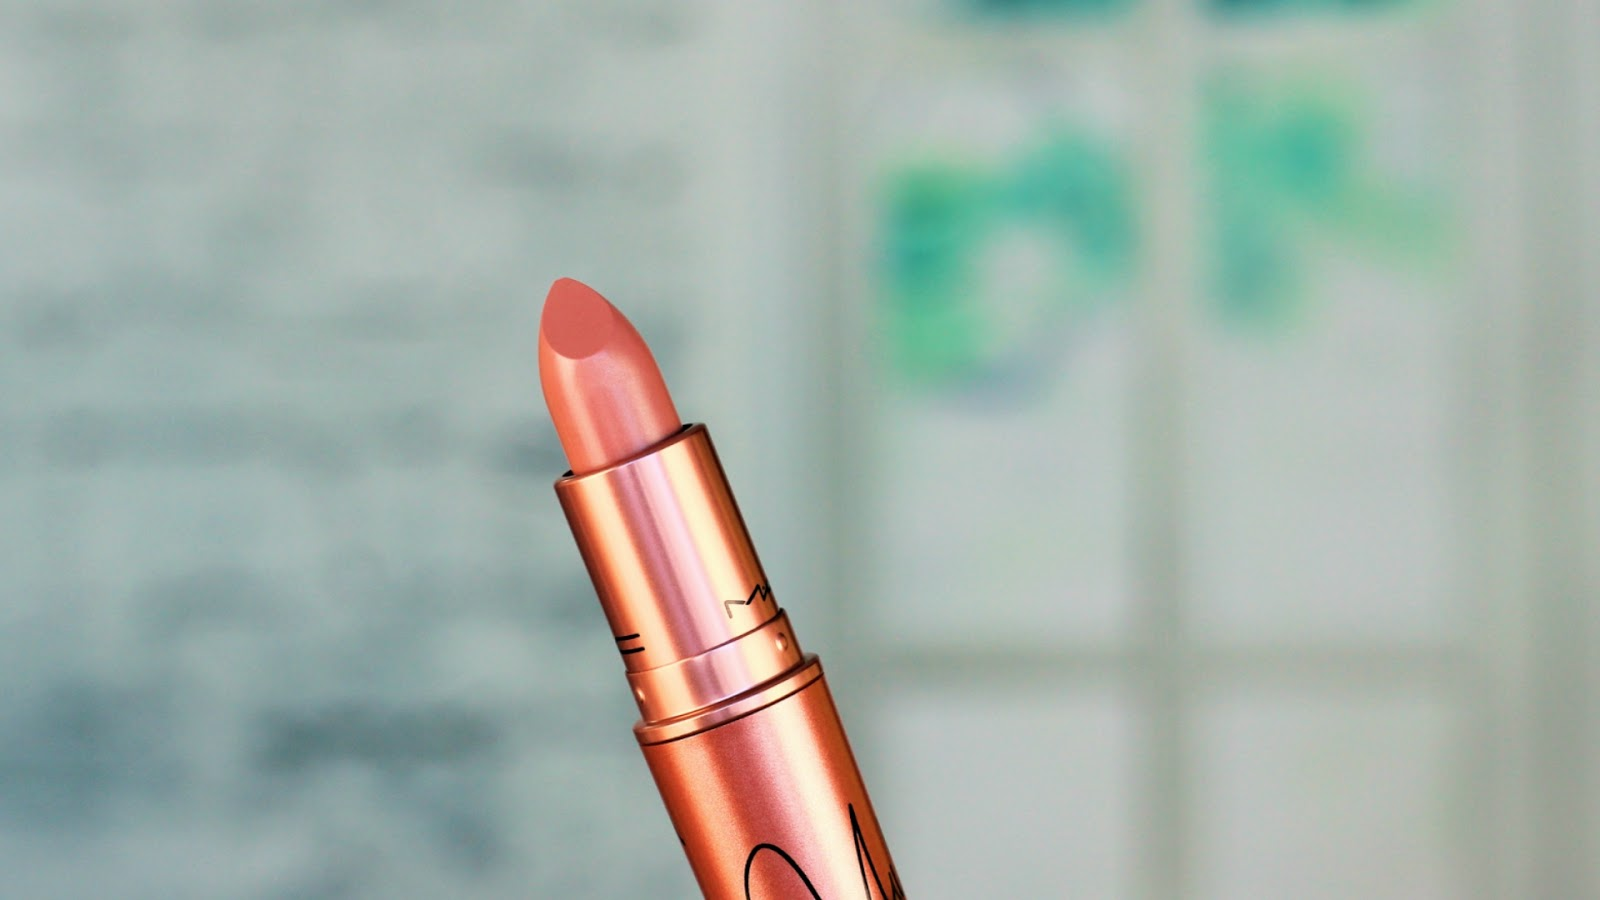 Full Review Of Nicki Minaj X MAC Lipstick...A Month Later